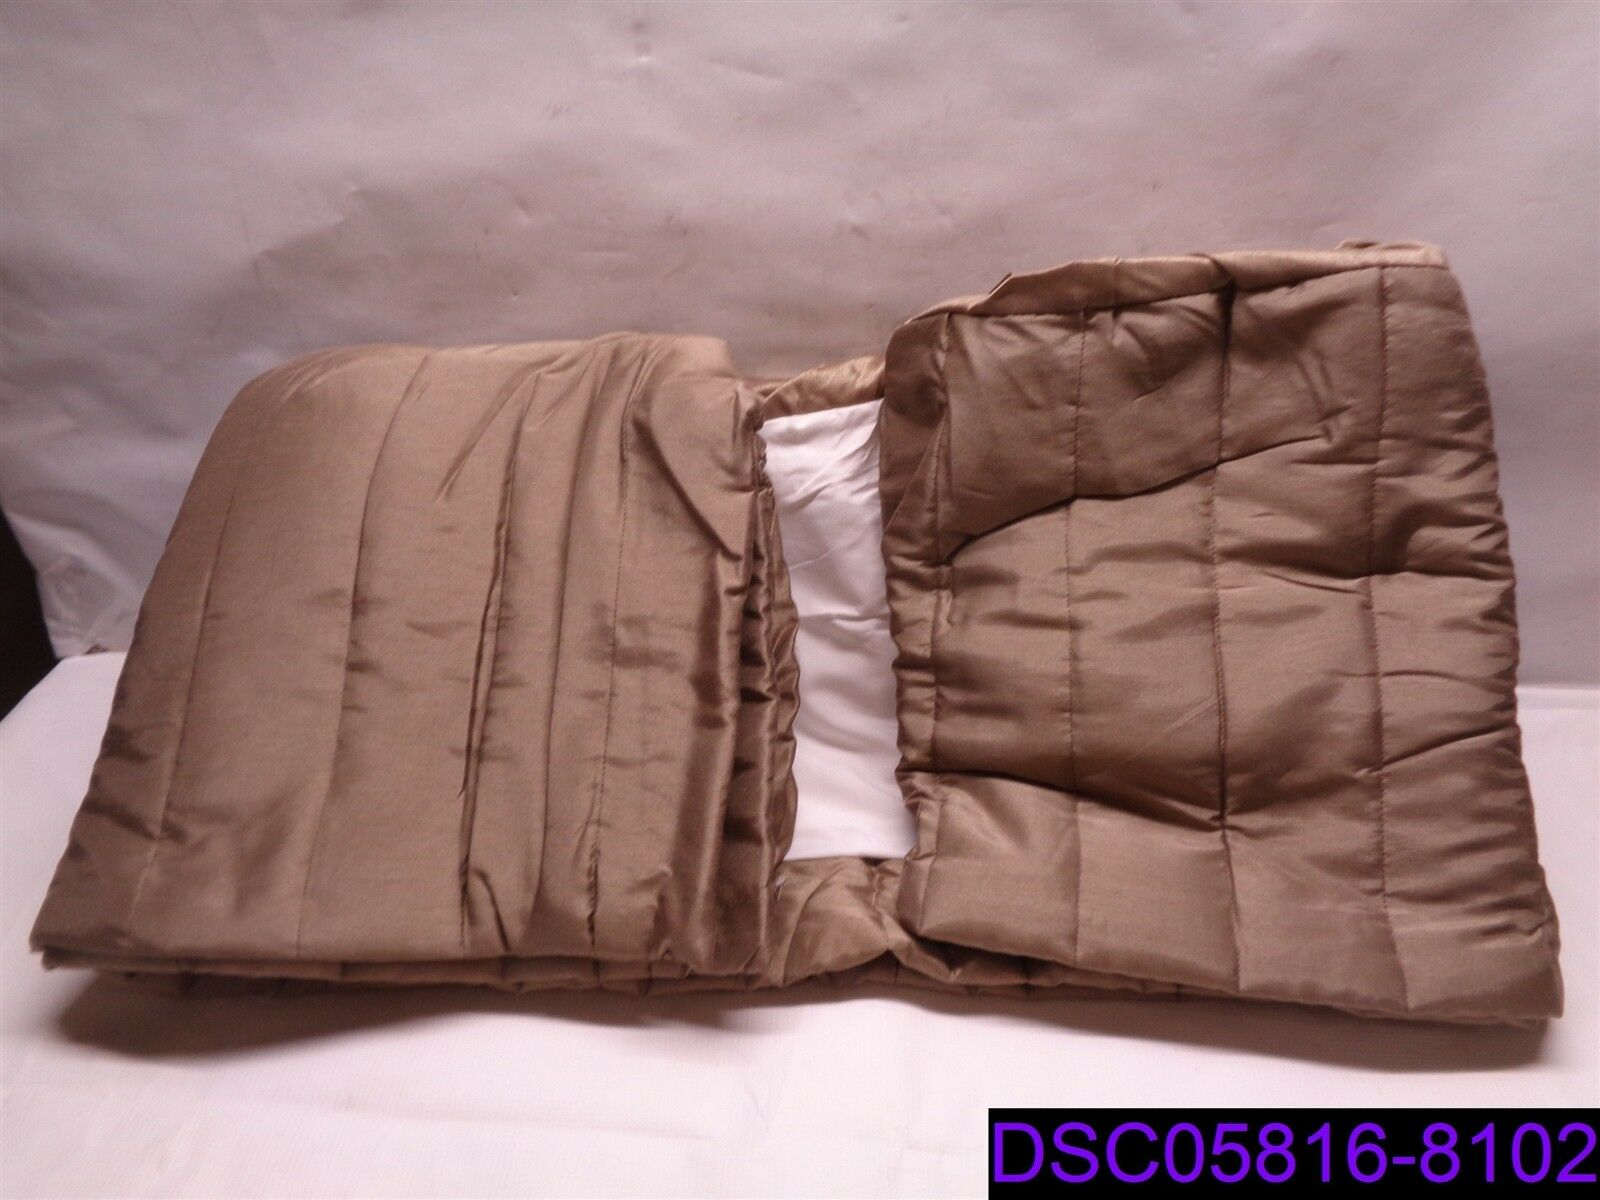 Qty = 6  Crown Bed Skirt in Stone Dimensione Full 54  x 80  x 15  P N 0025072